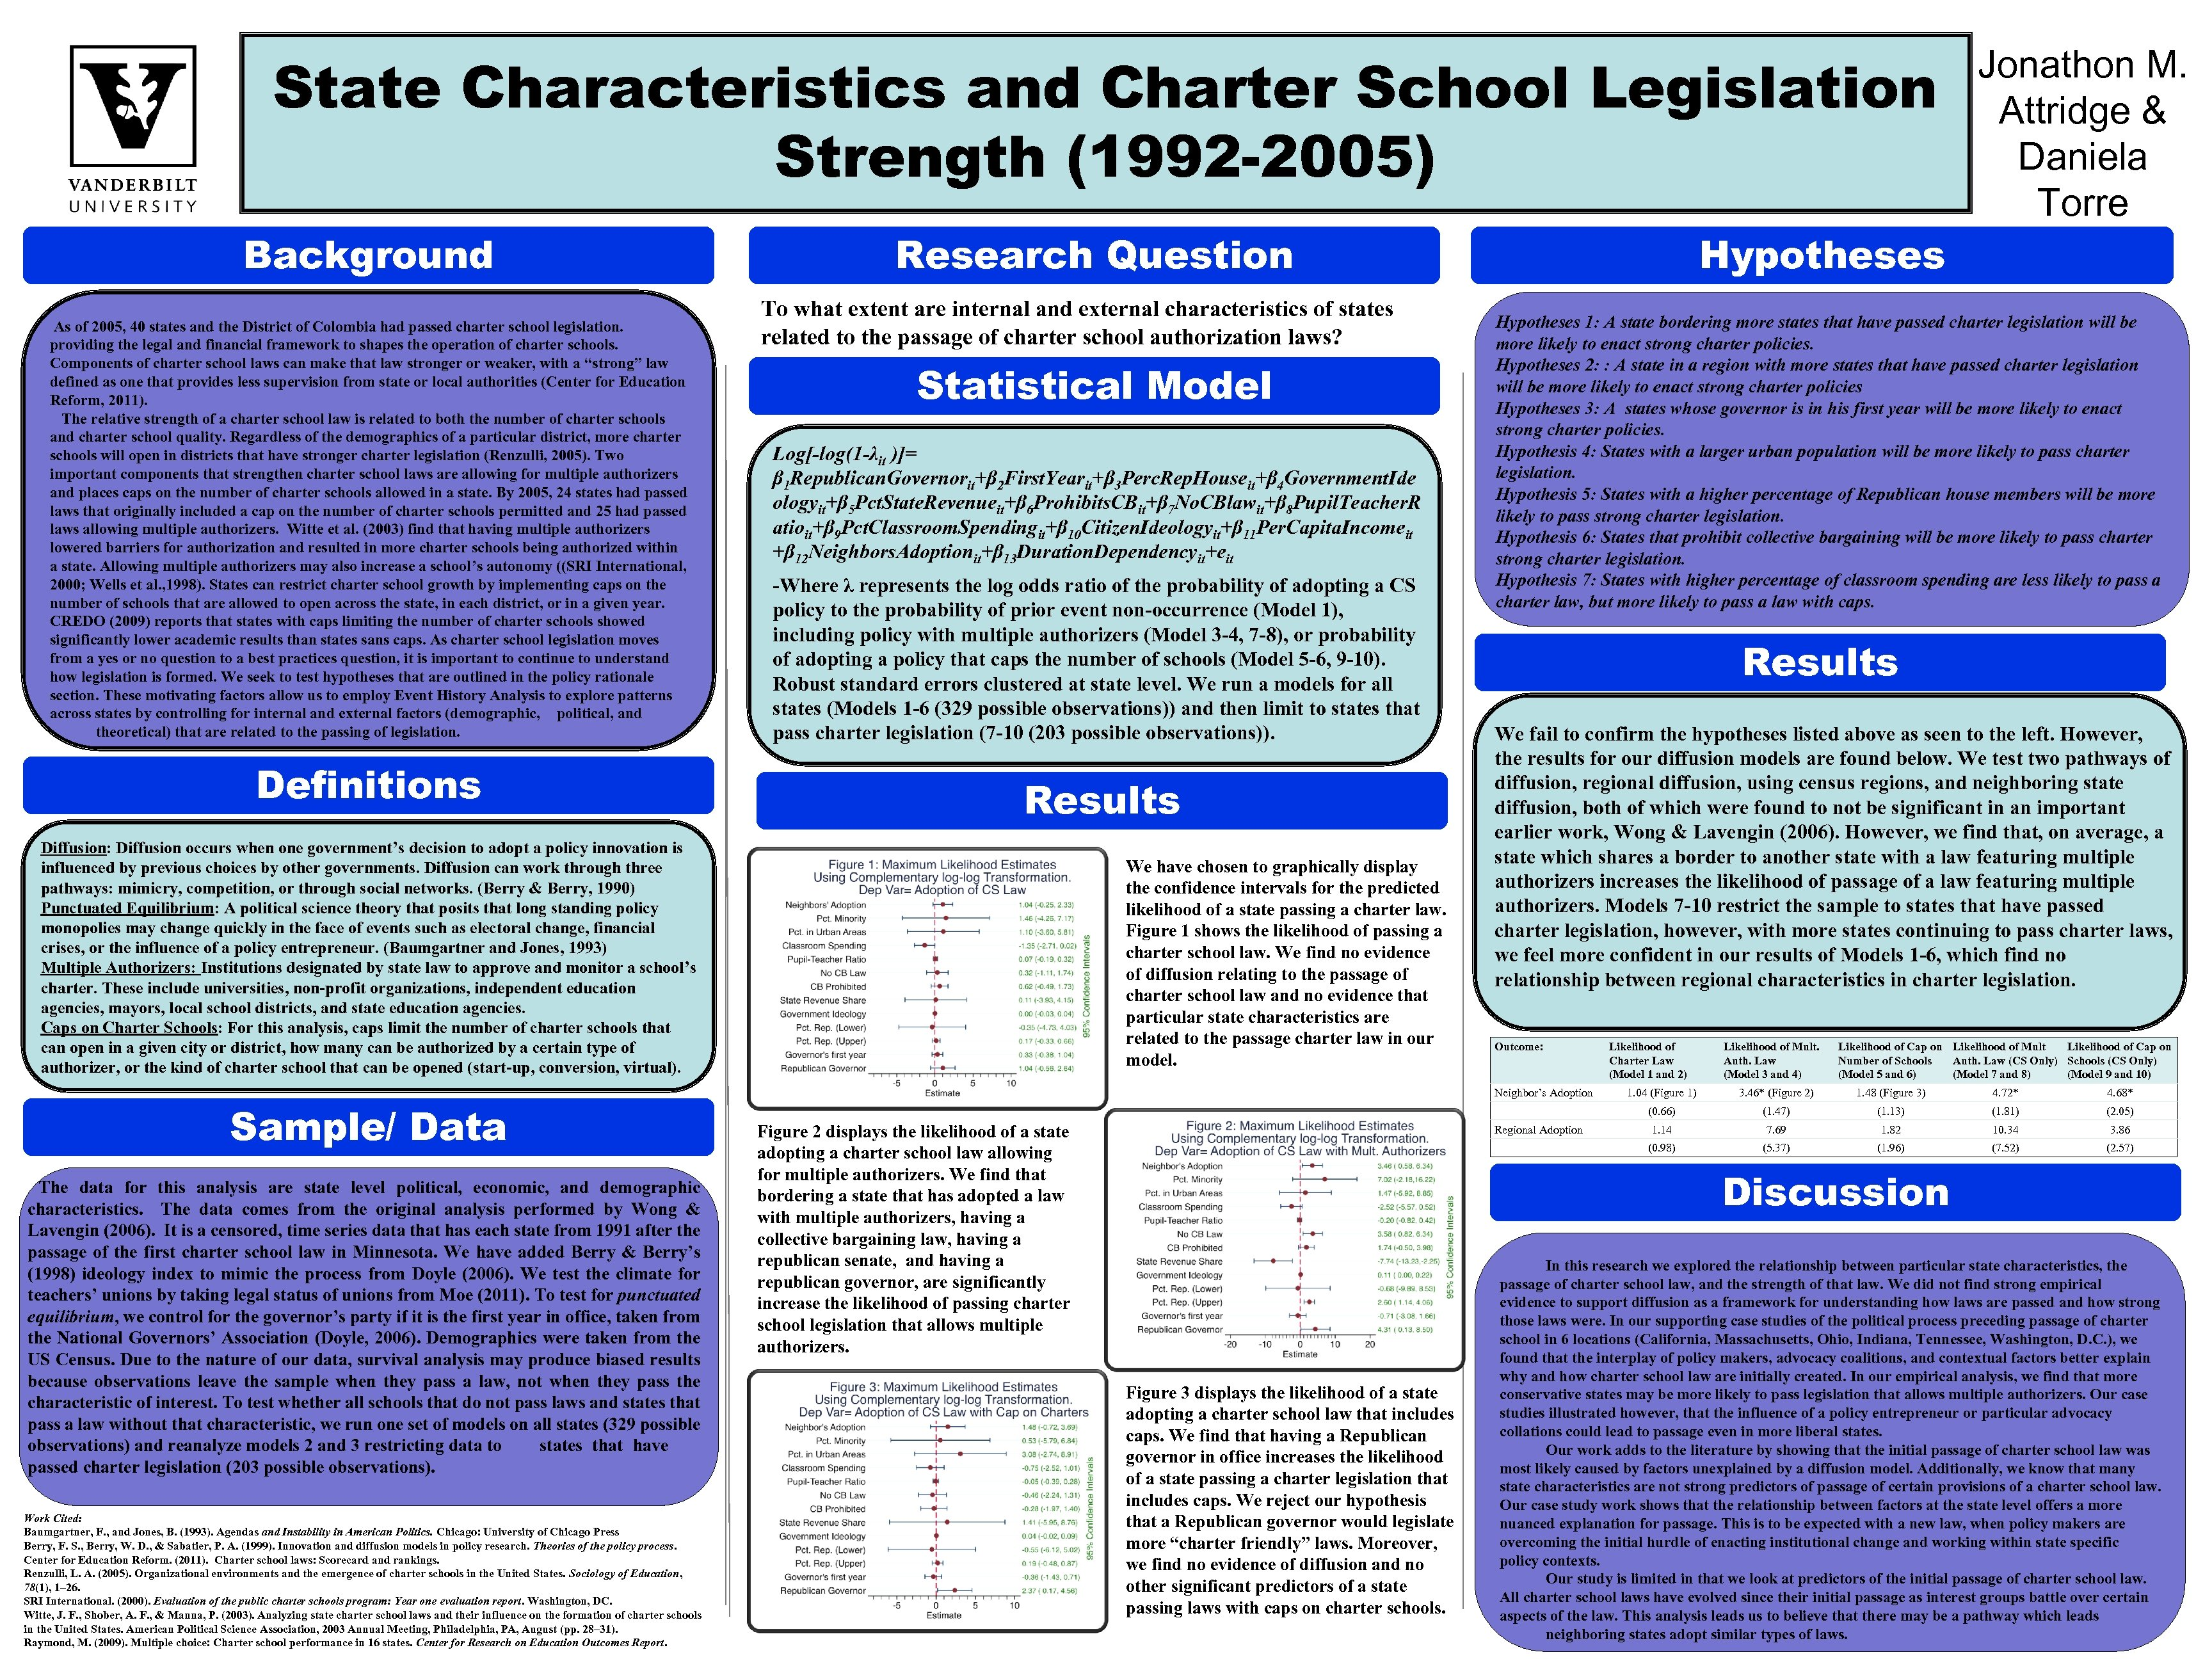 State Characteristics and Charter School Legislation Strength (1992 -2005) Background As of 2005, 40